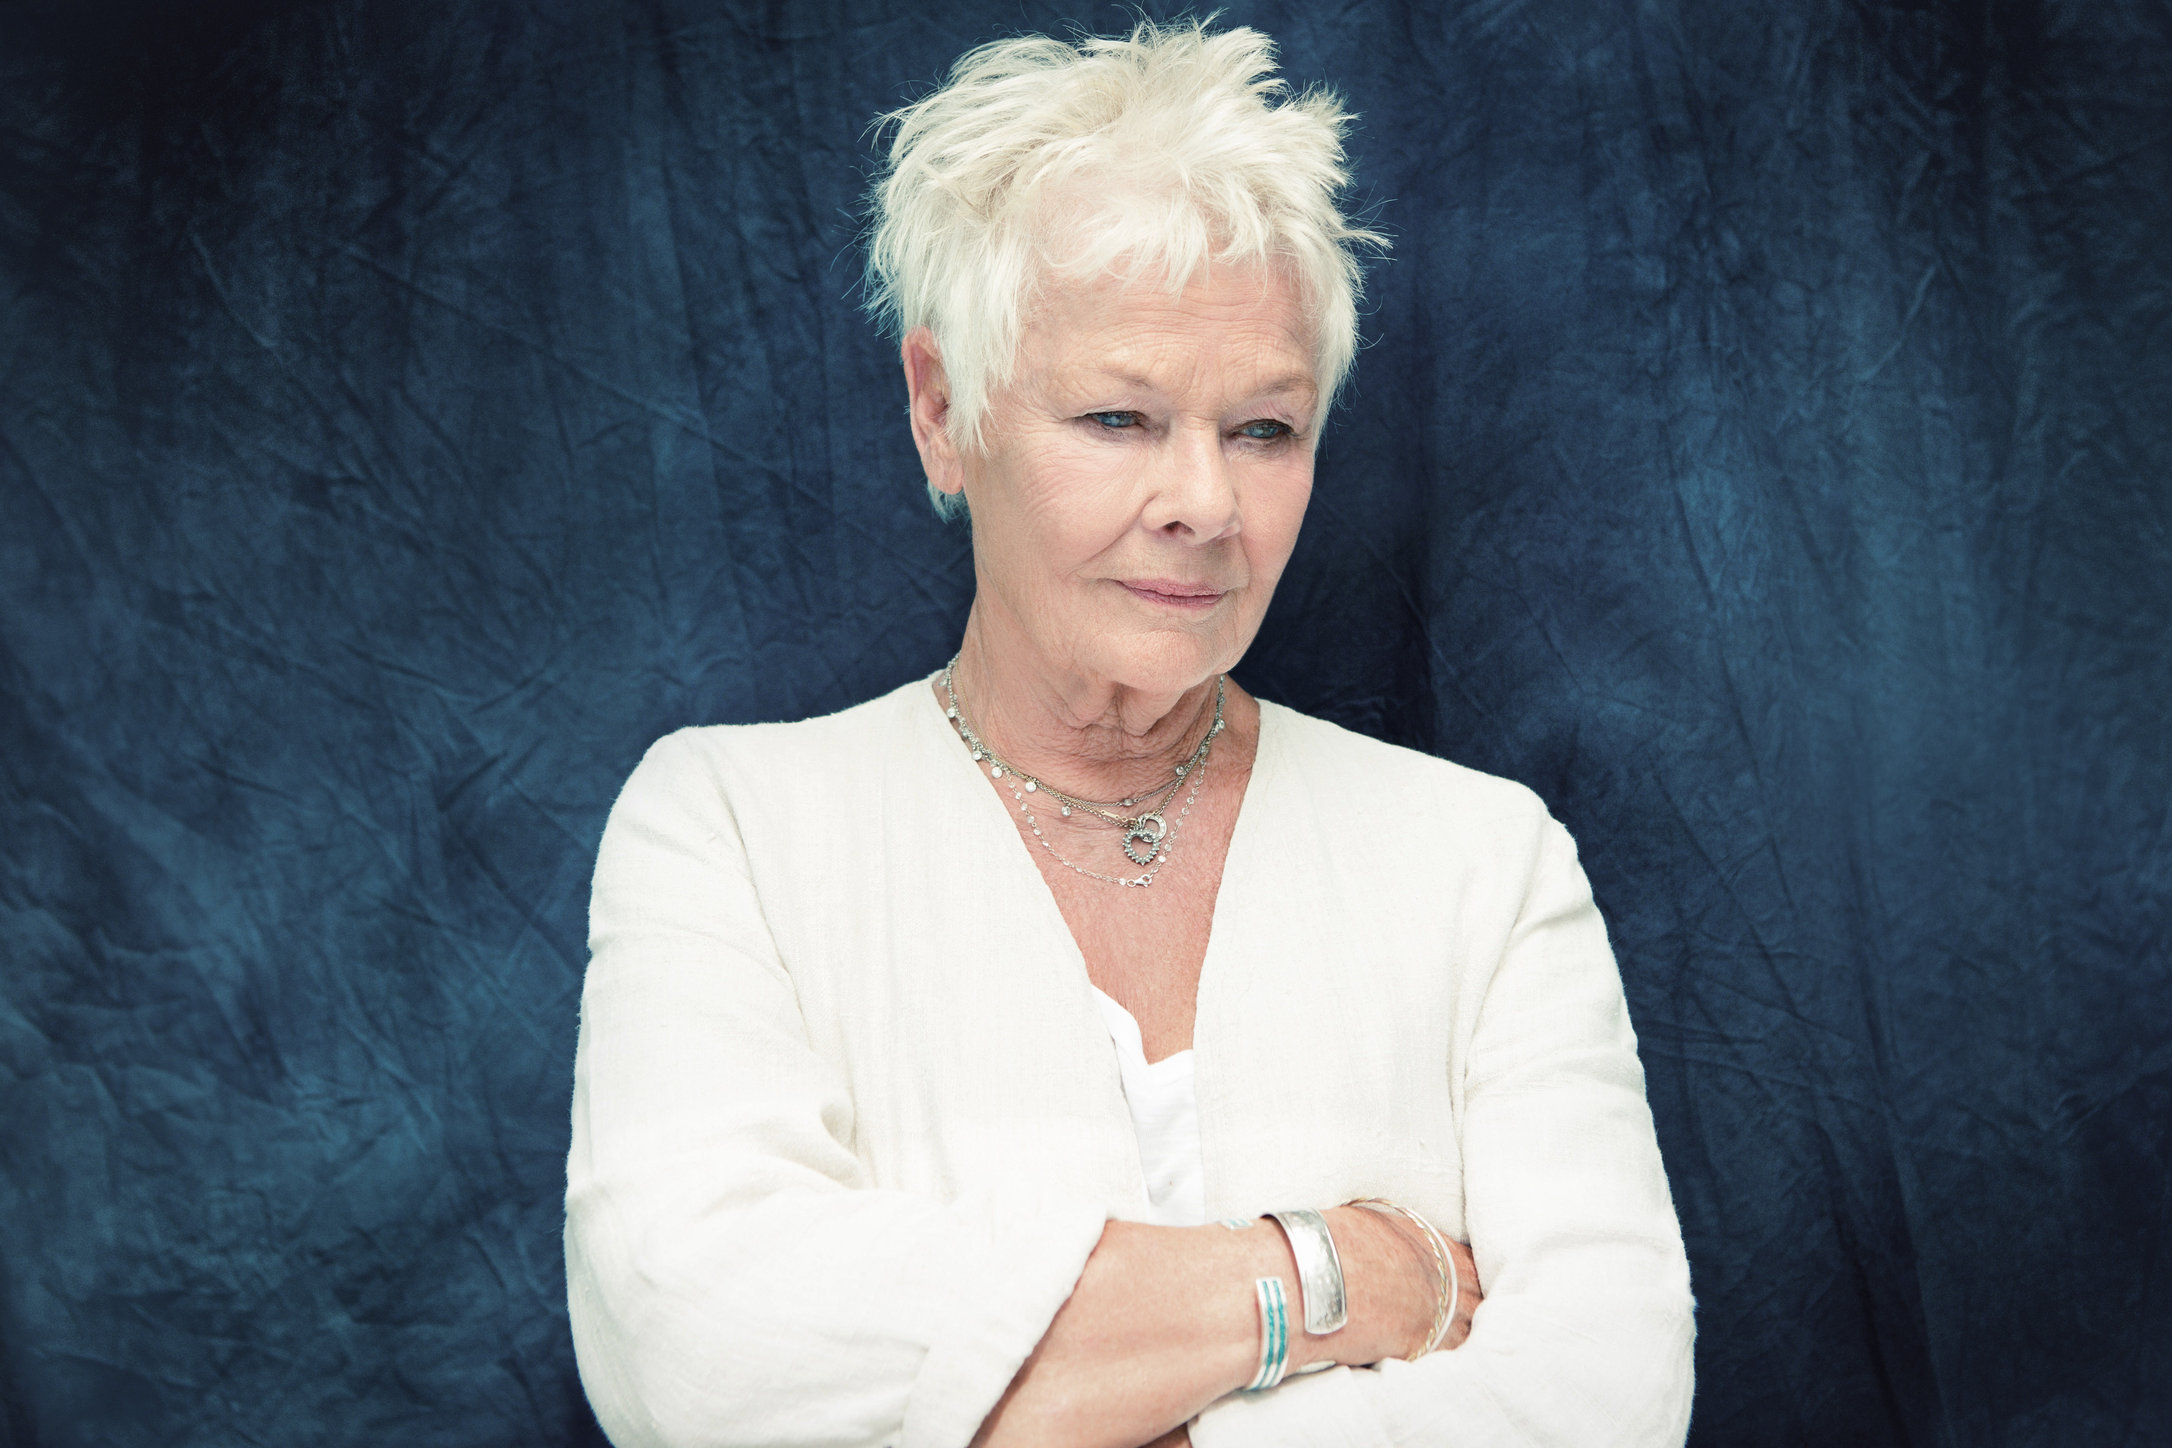 judi dench, actress